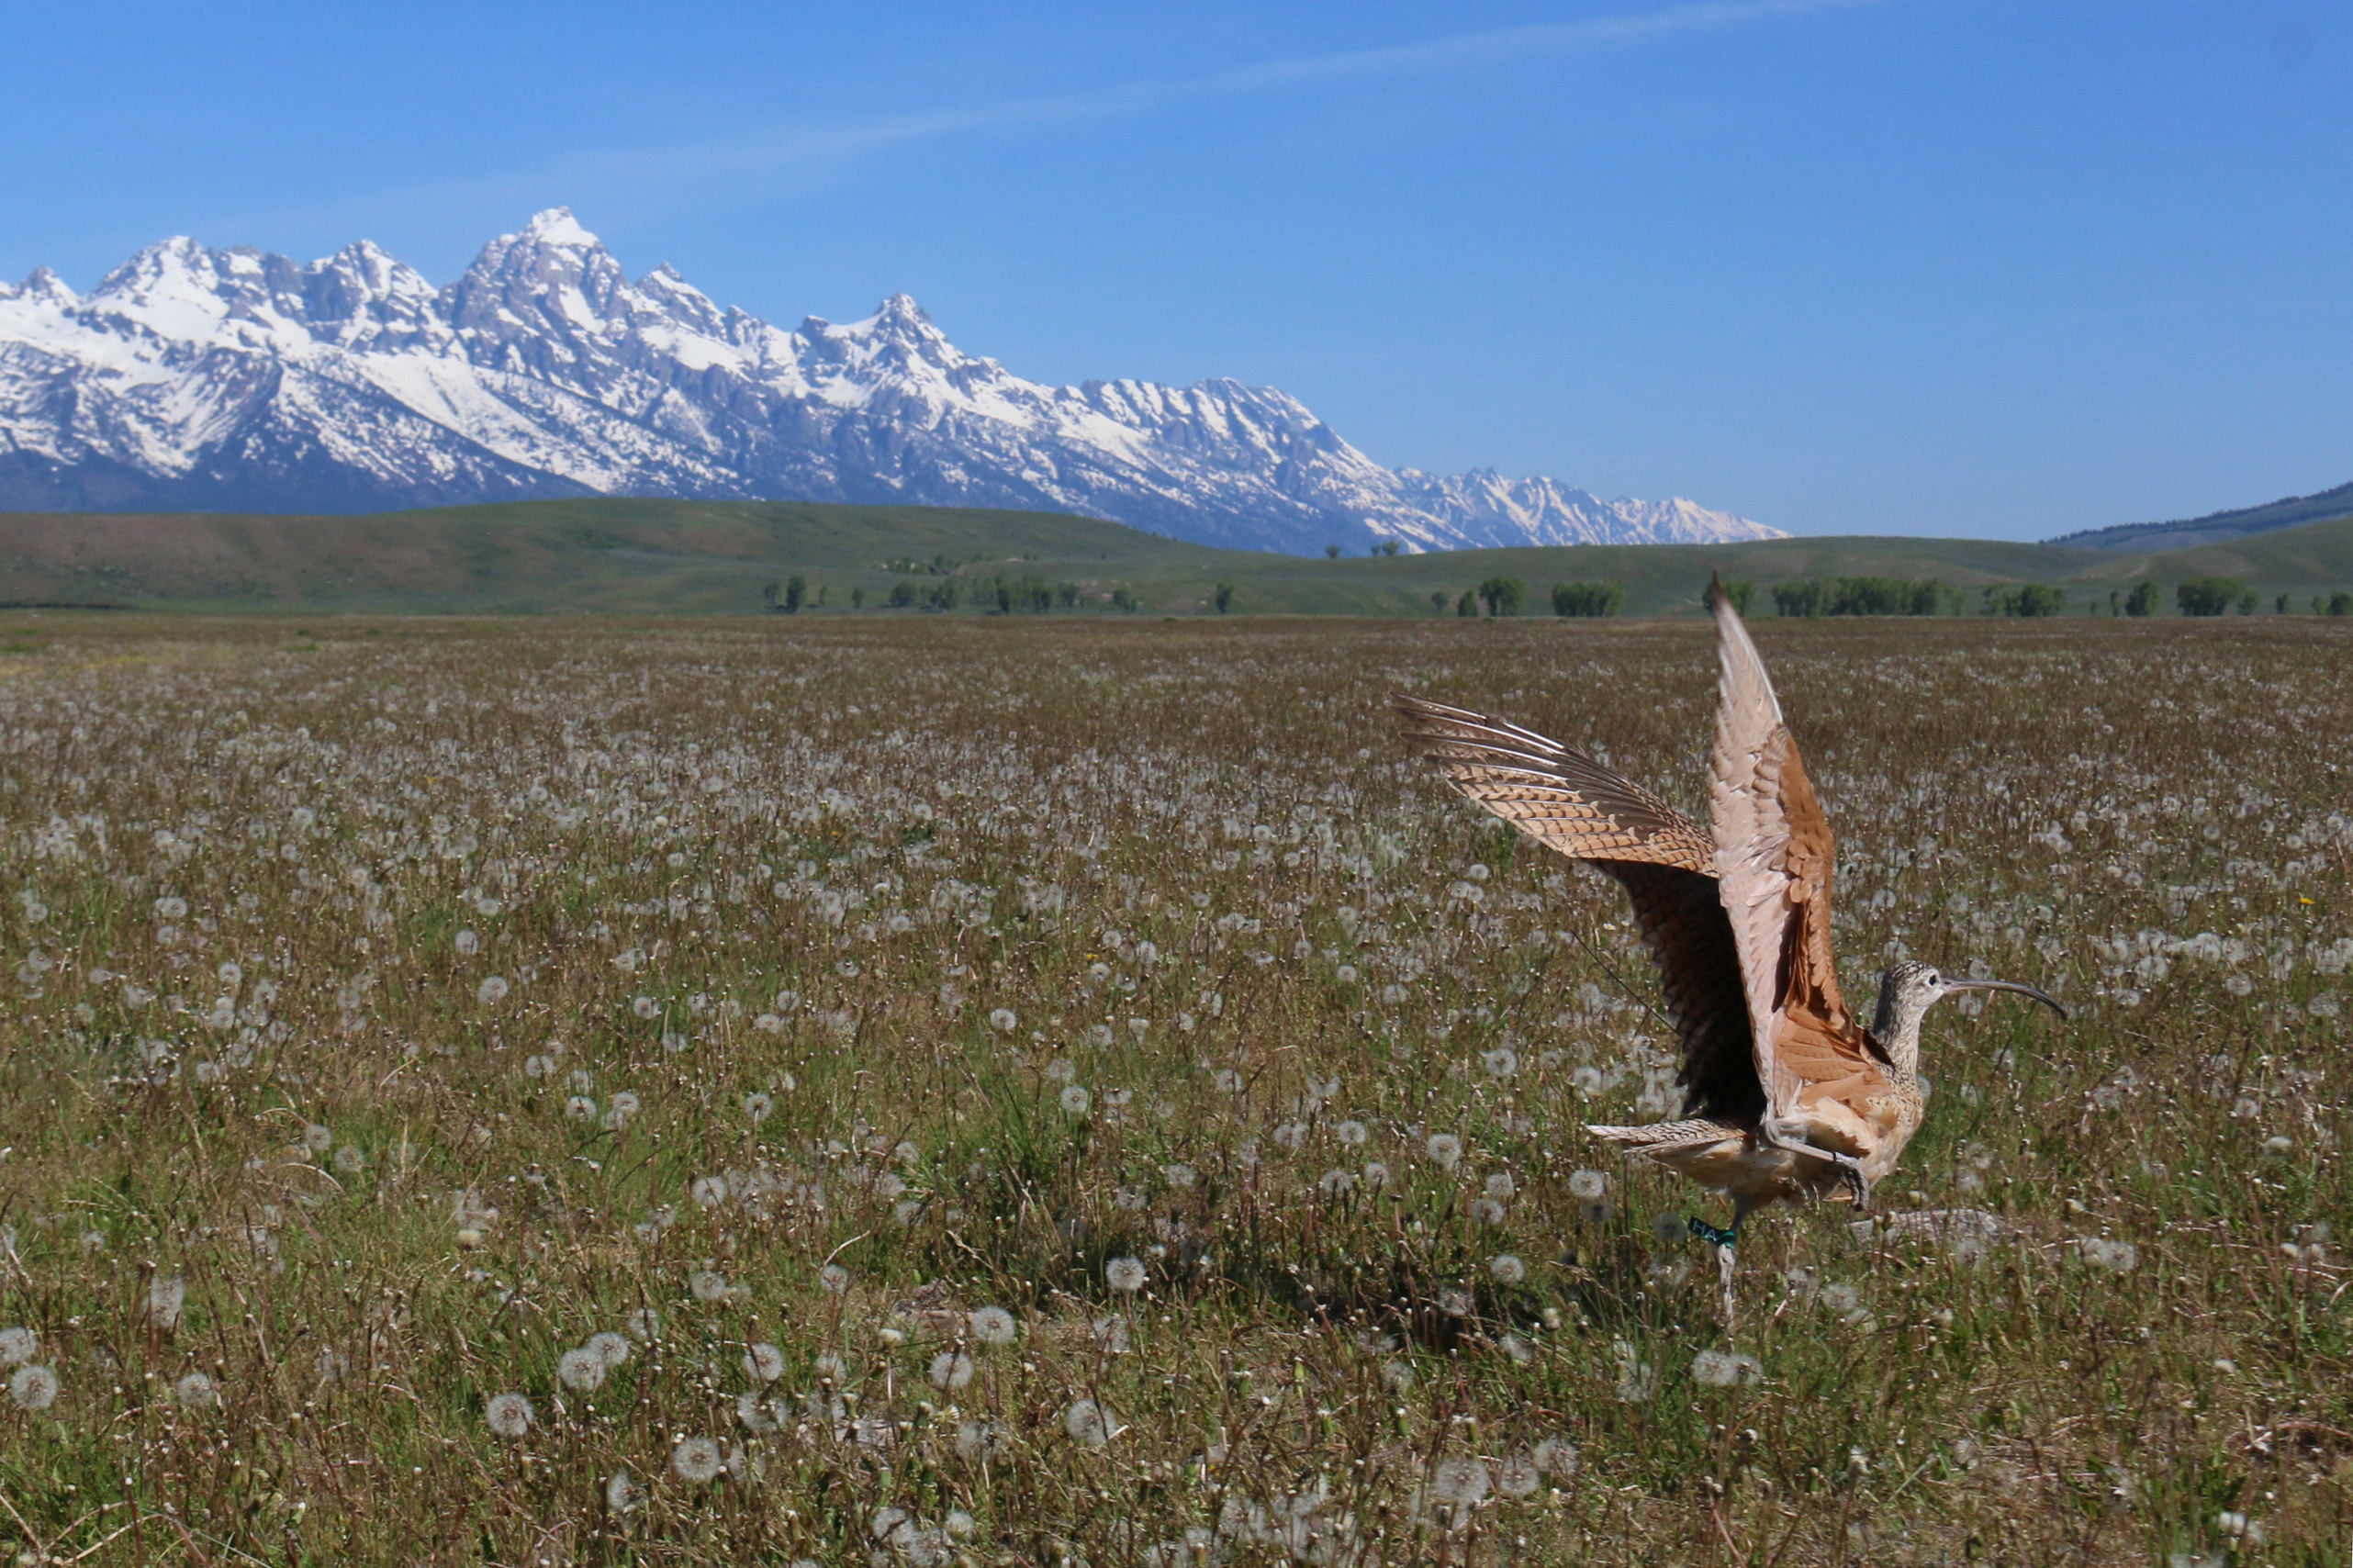 a long billed curlew takes flight with the snowy grand teton mountains in the background